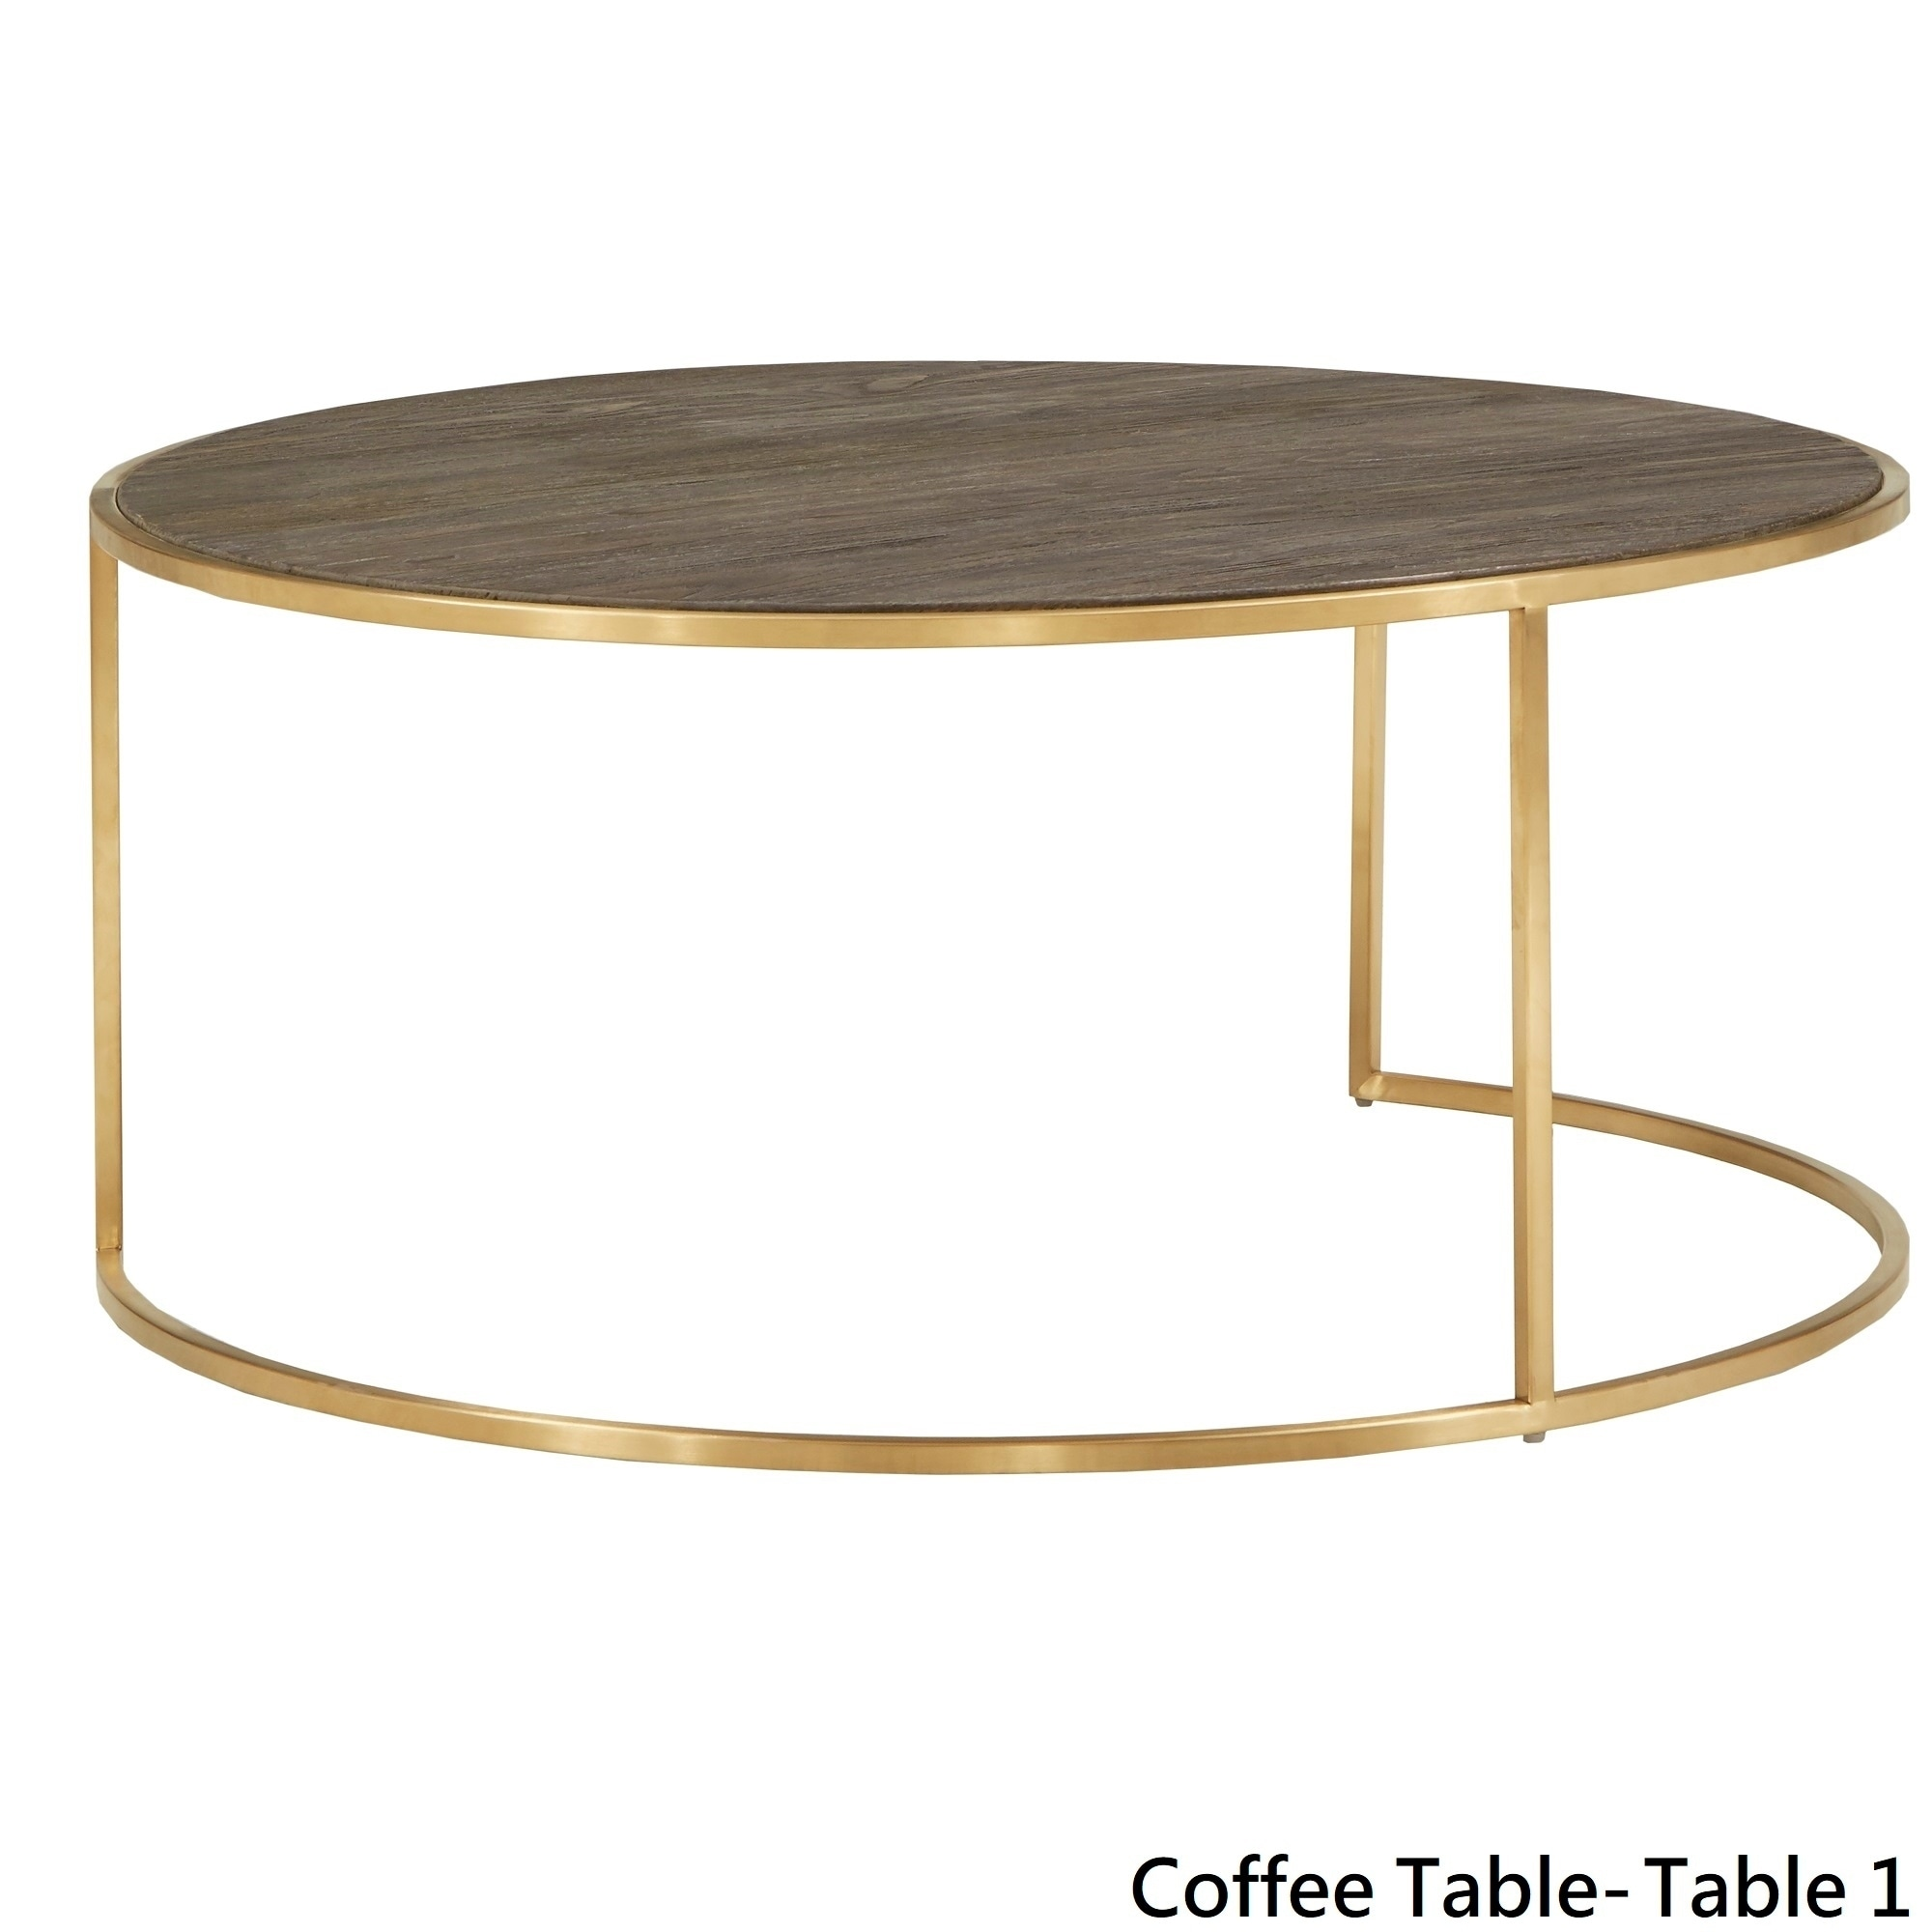 Subira Antique Gold Finished Metal And Reclaimed Wood Round Coffee Table Nesting Set By Inspire Q Bold